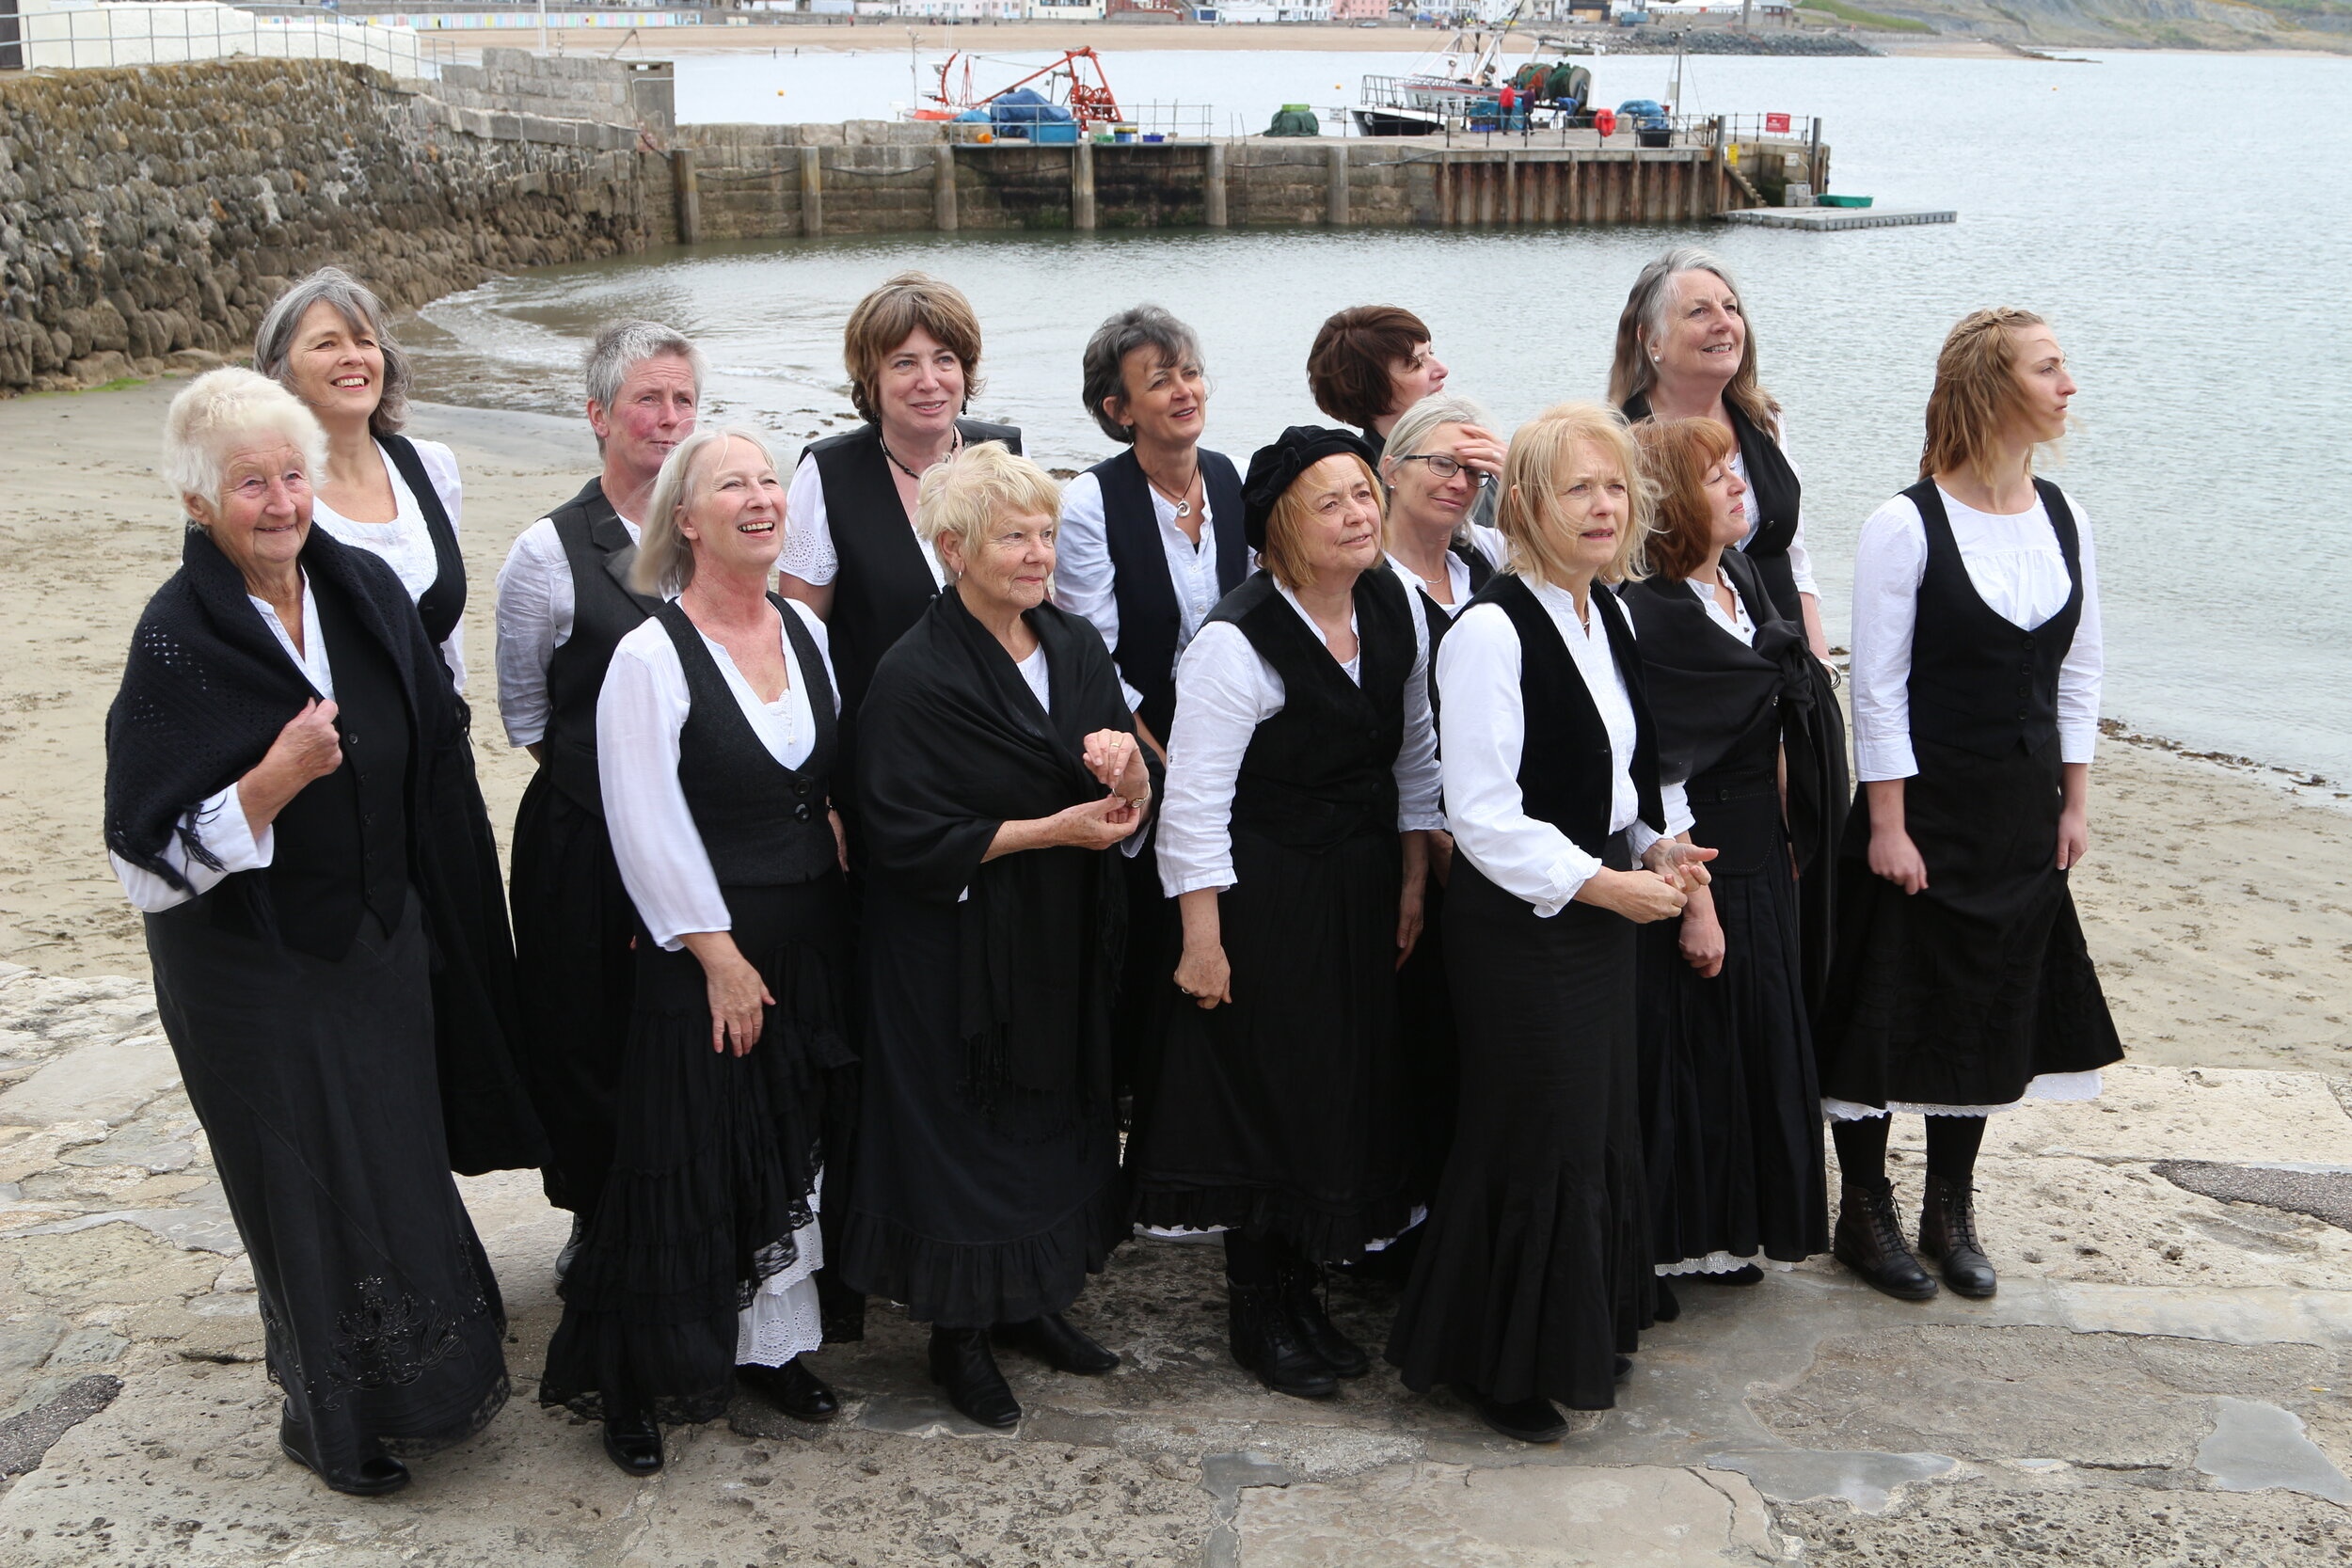 The 'Fishermen's Wives' waiting for the men to come home,  the Cobb Lyme Regis 2017